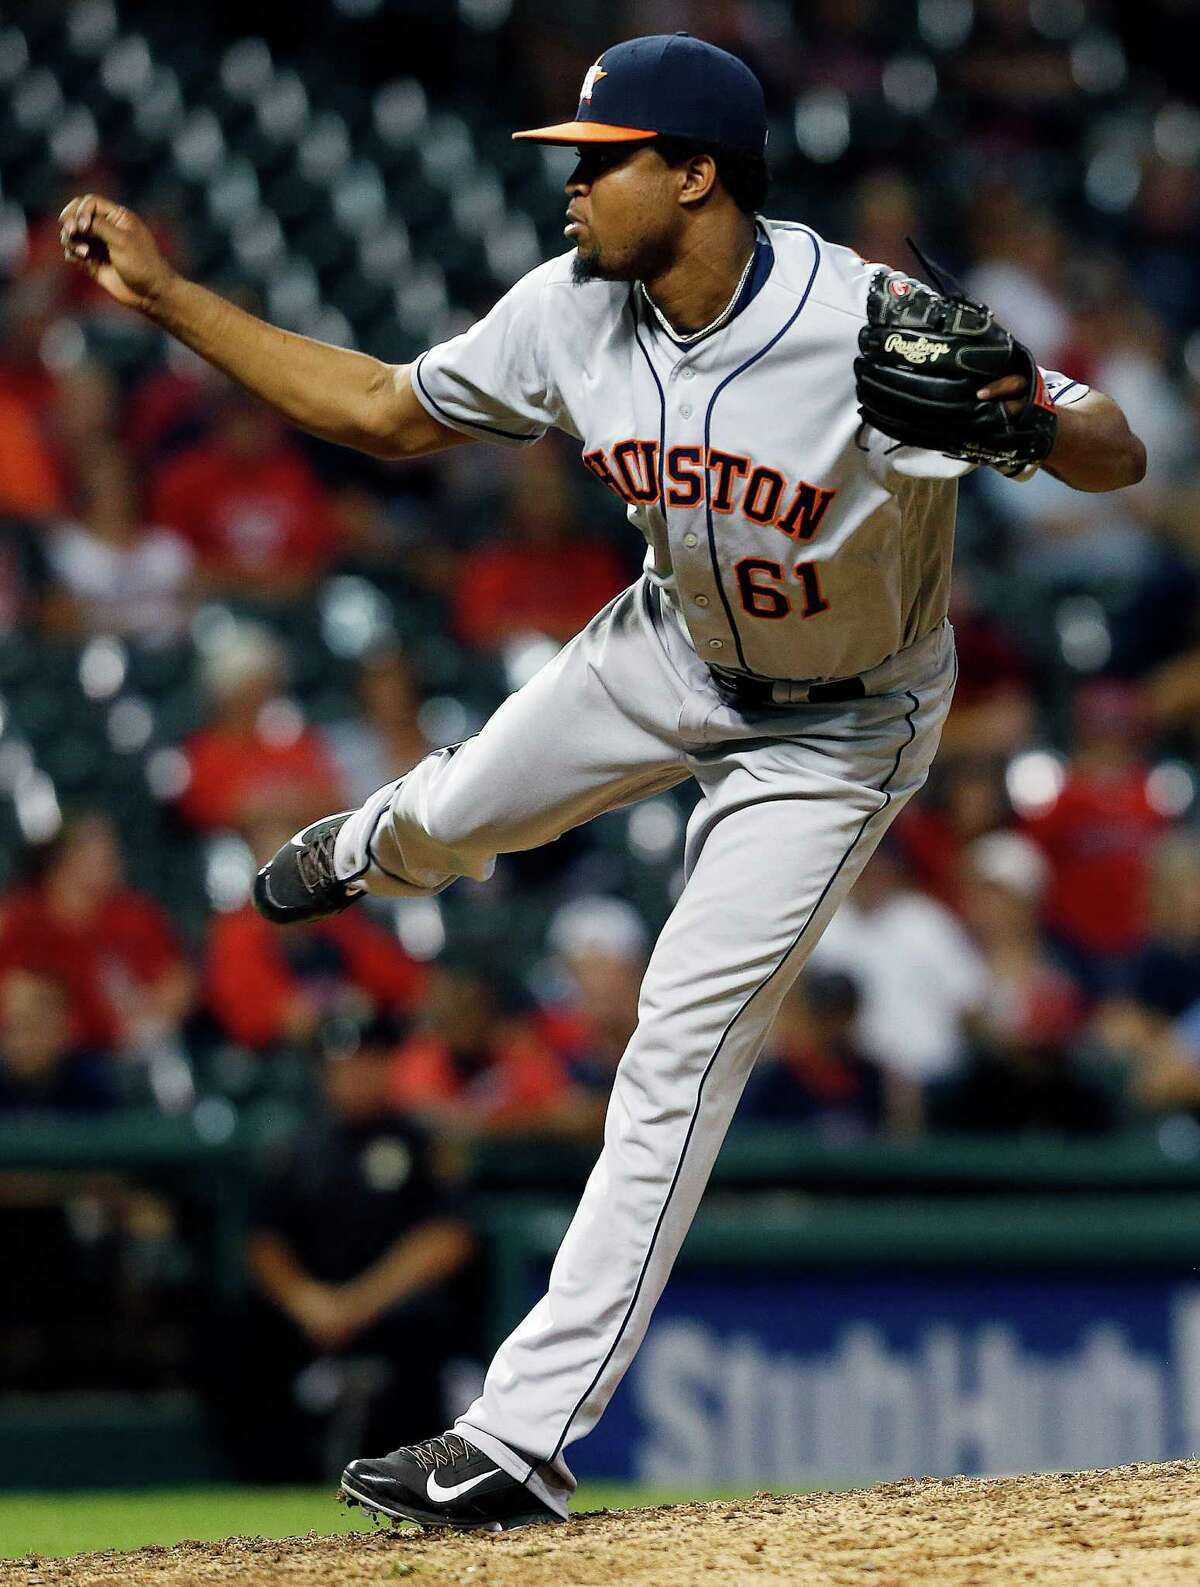 Houston Astros relief pitcher Jandel Gustave delivers against the Cleveland Indians during the ninth inning of a baseball game Monday, Sept. 5, 2016, in Cleveland. The Astros won 6-2. (AP Photo/Ron Schwane)